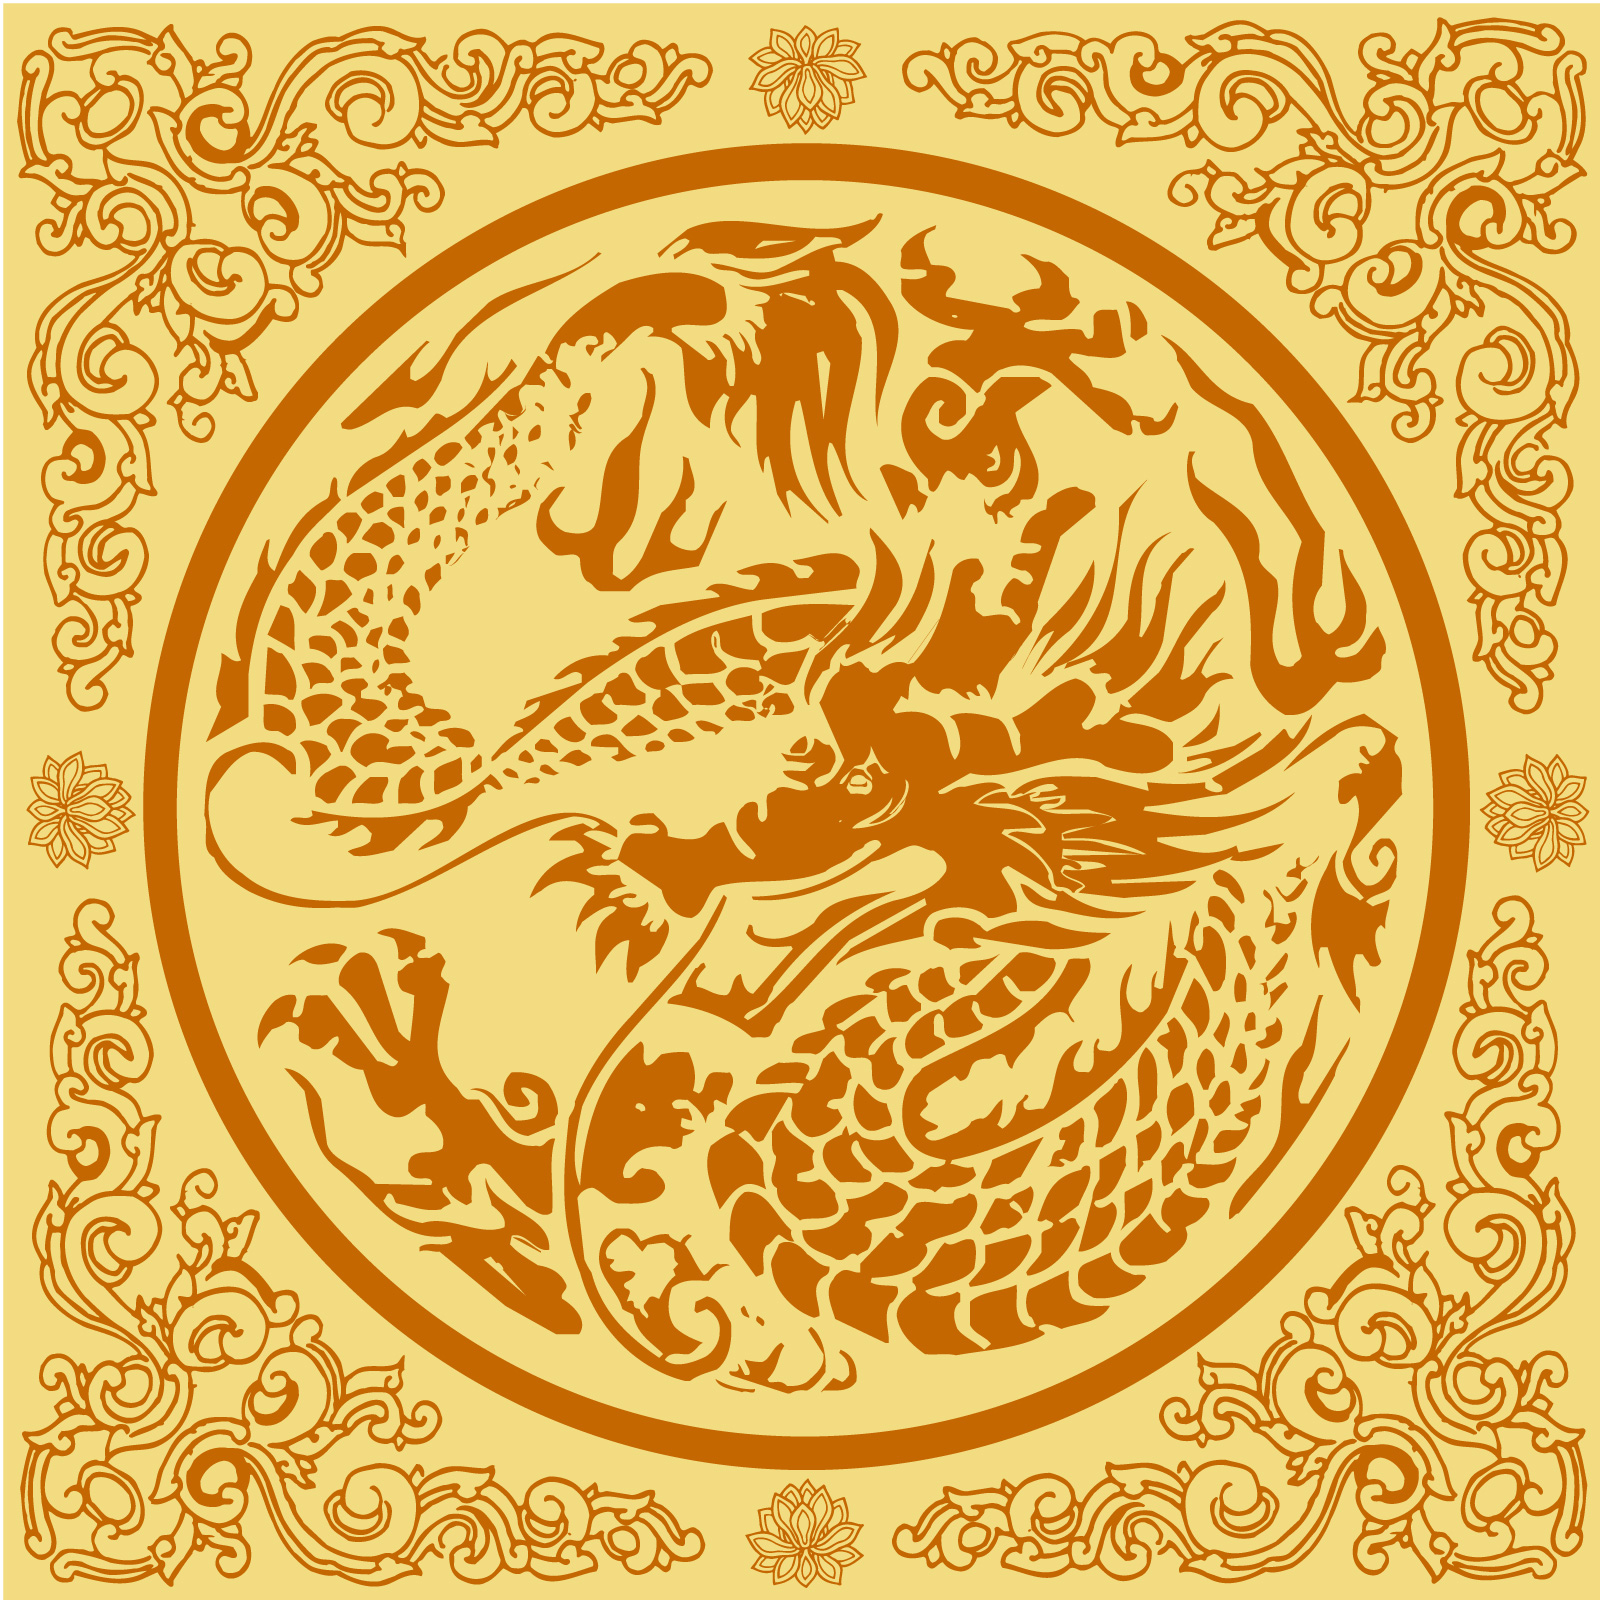 chinesefontdesign.com 2017 03 29 18 36 44 Traditional Chinese classical style loong (dragon) pattern vector material   China Illustrations Vectors AI ESP loong vectors loong ai